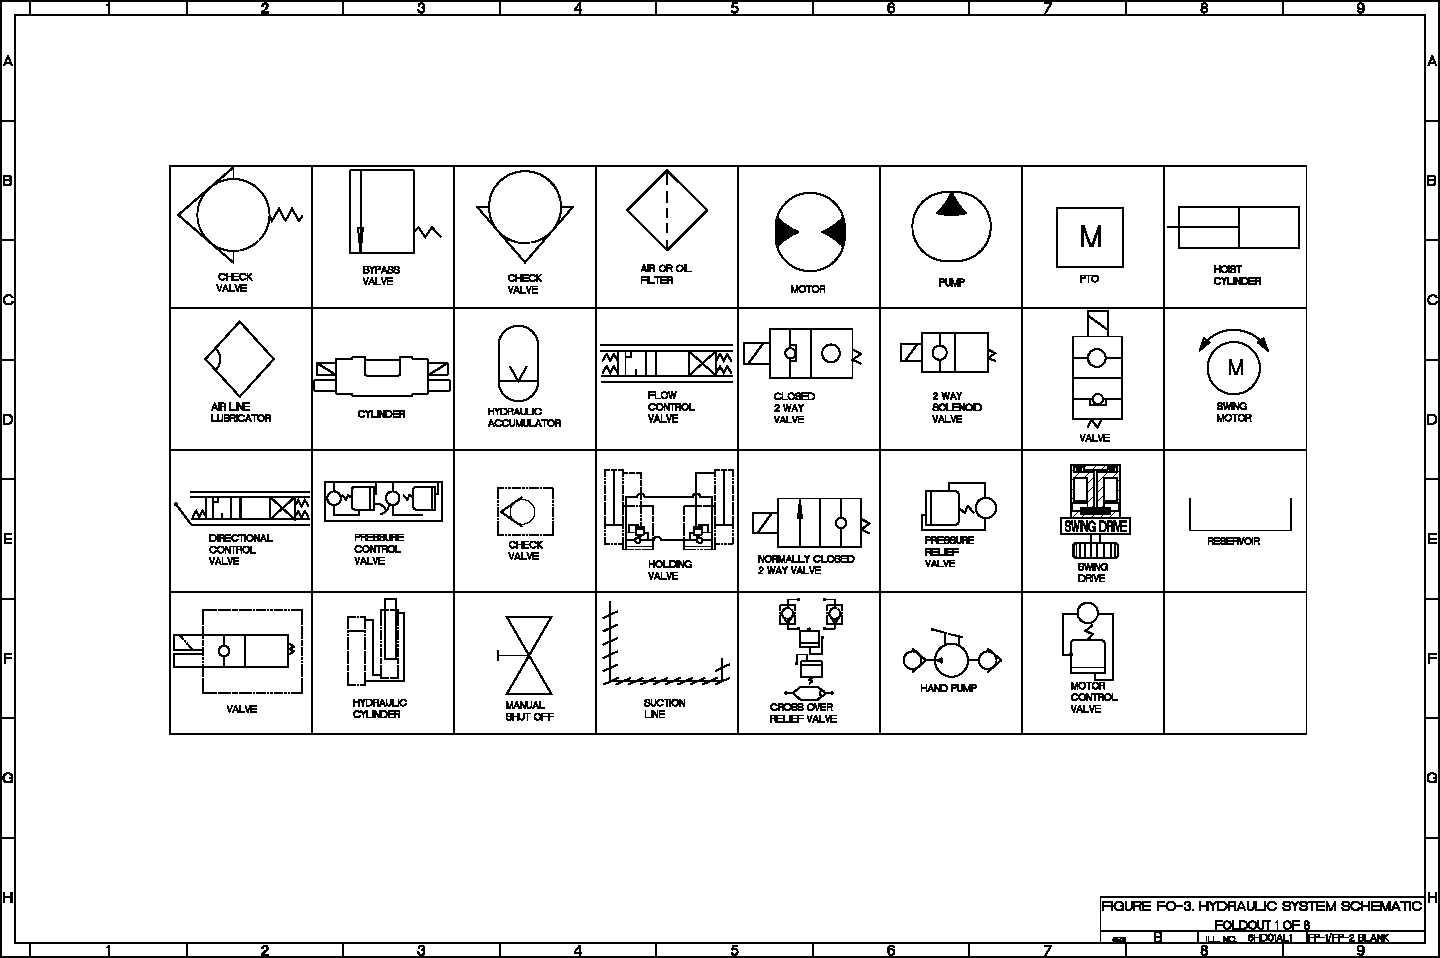 Volkswagen Beetle Fuse Box Diagram On Hydraulic Schematic